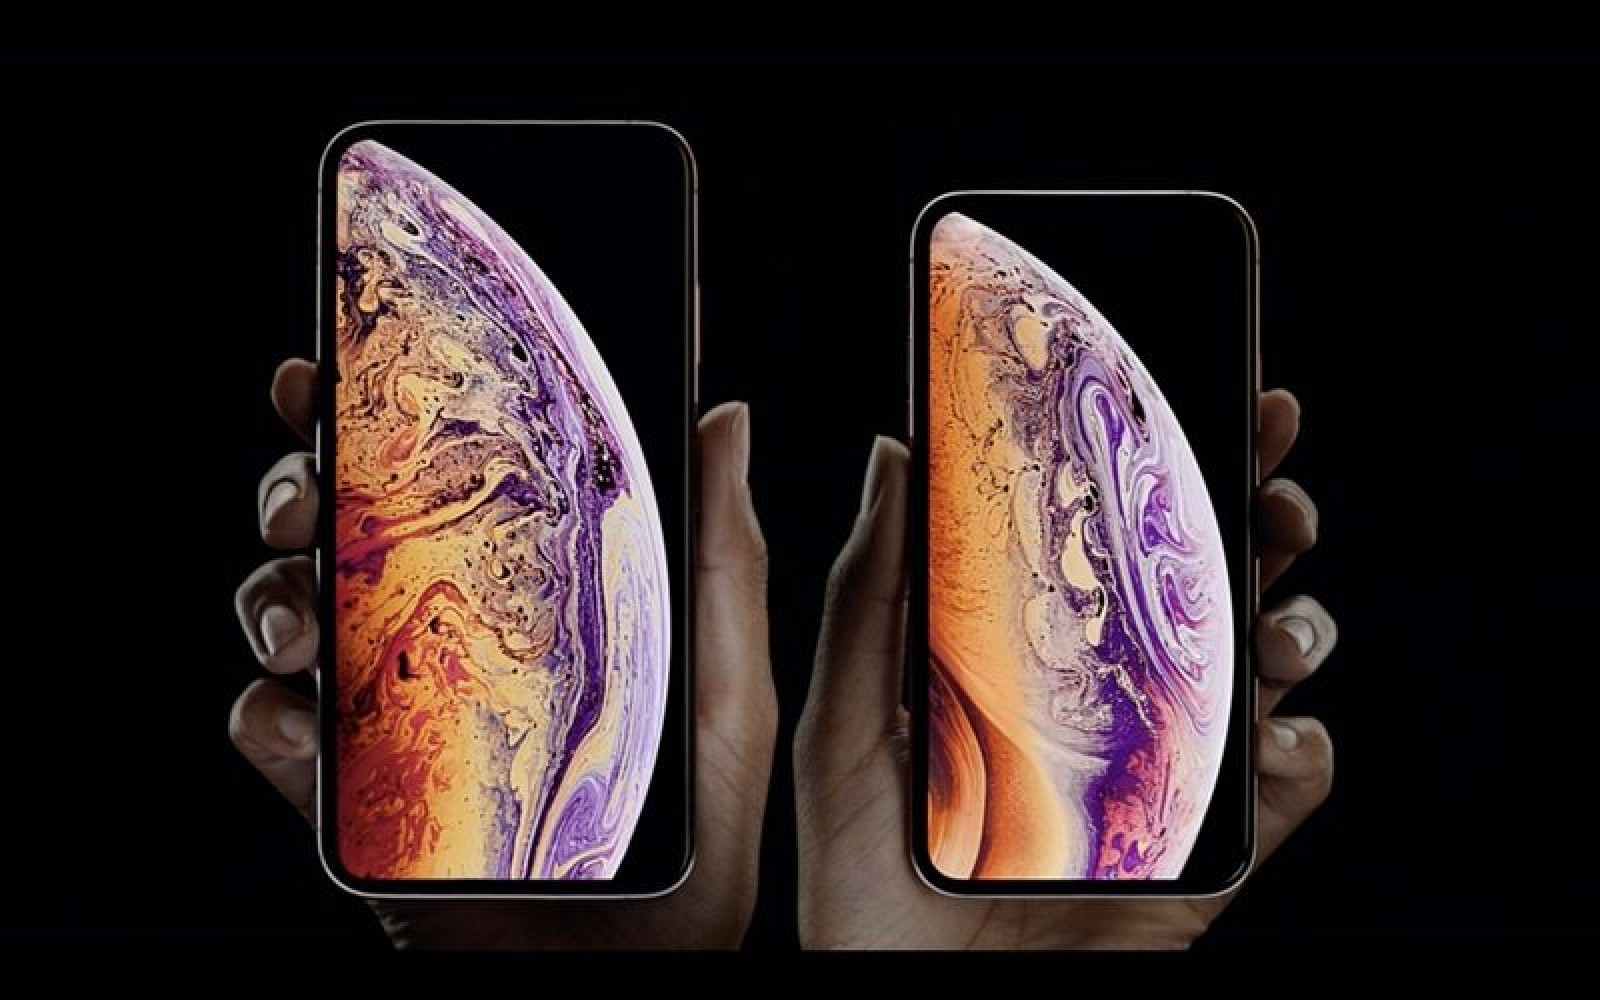 https://cdn.macrumors.com/article-new/2018/09/f1536773956-800x500.jpg?retina